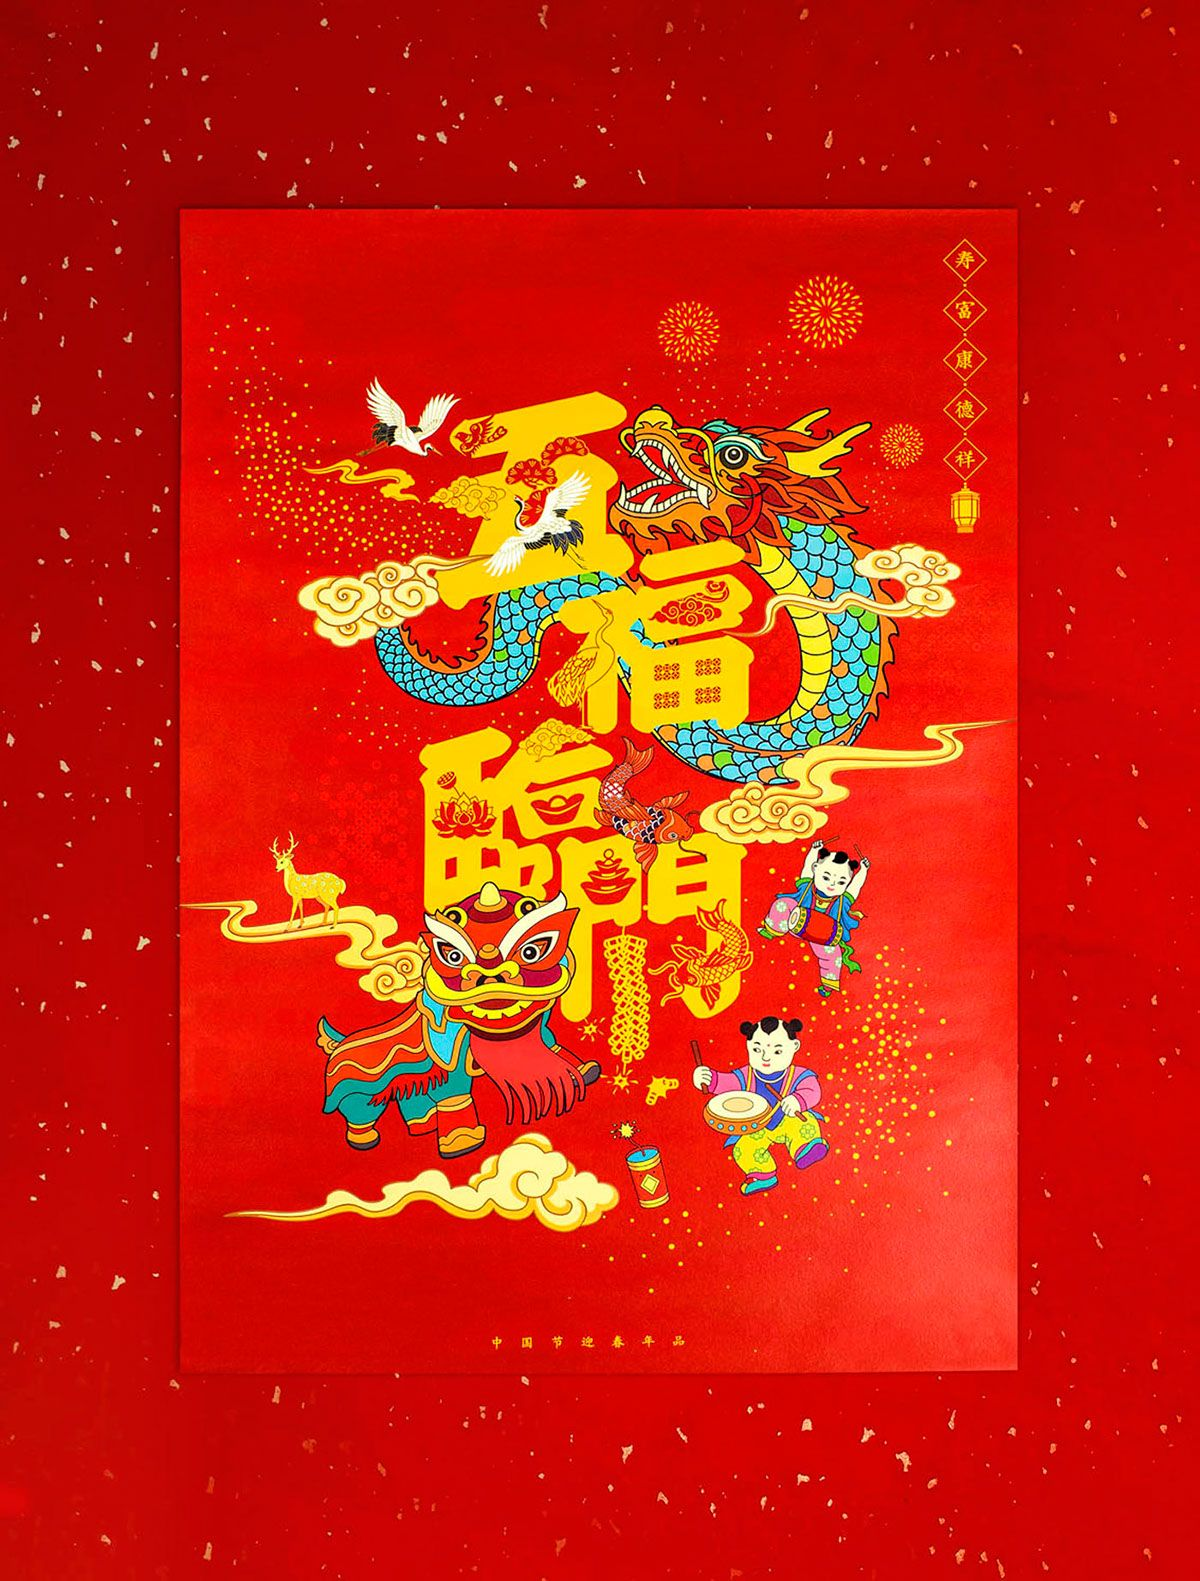 Pin by kita xiuqin on 中國   Chinese festival, Spring festival, Festival